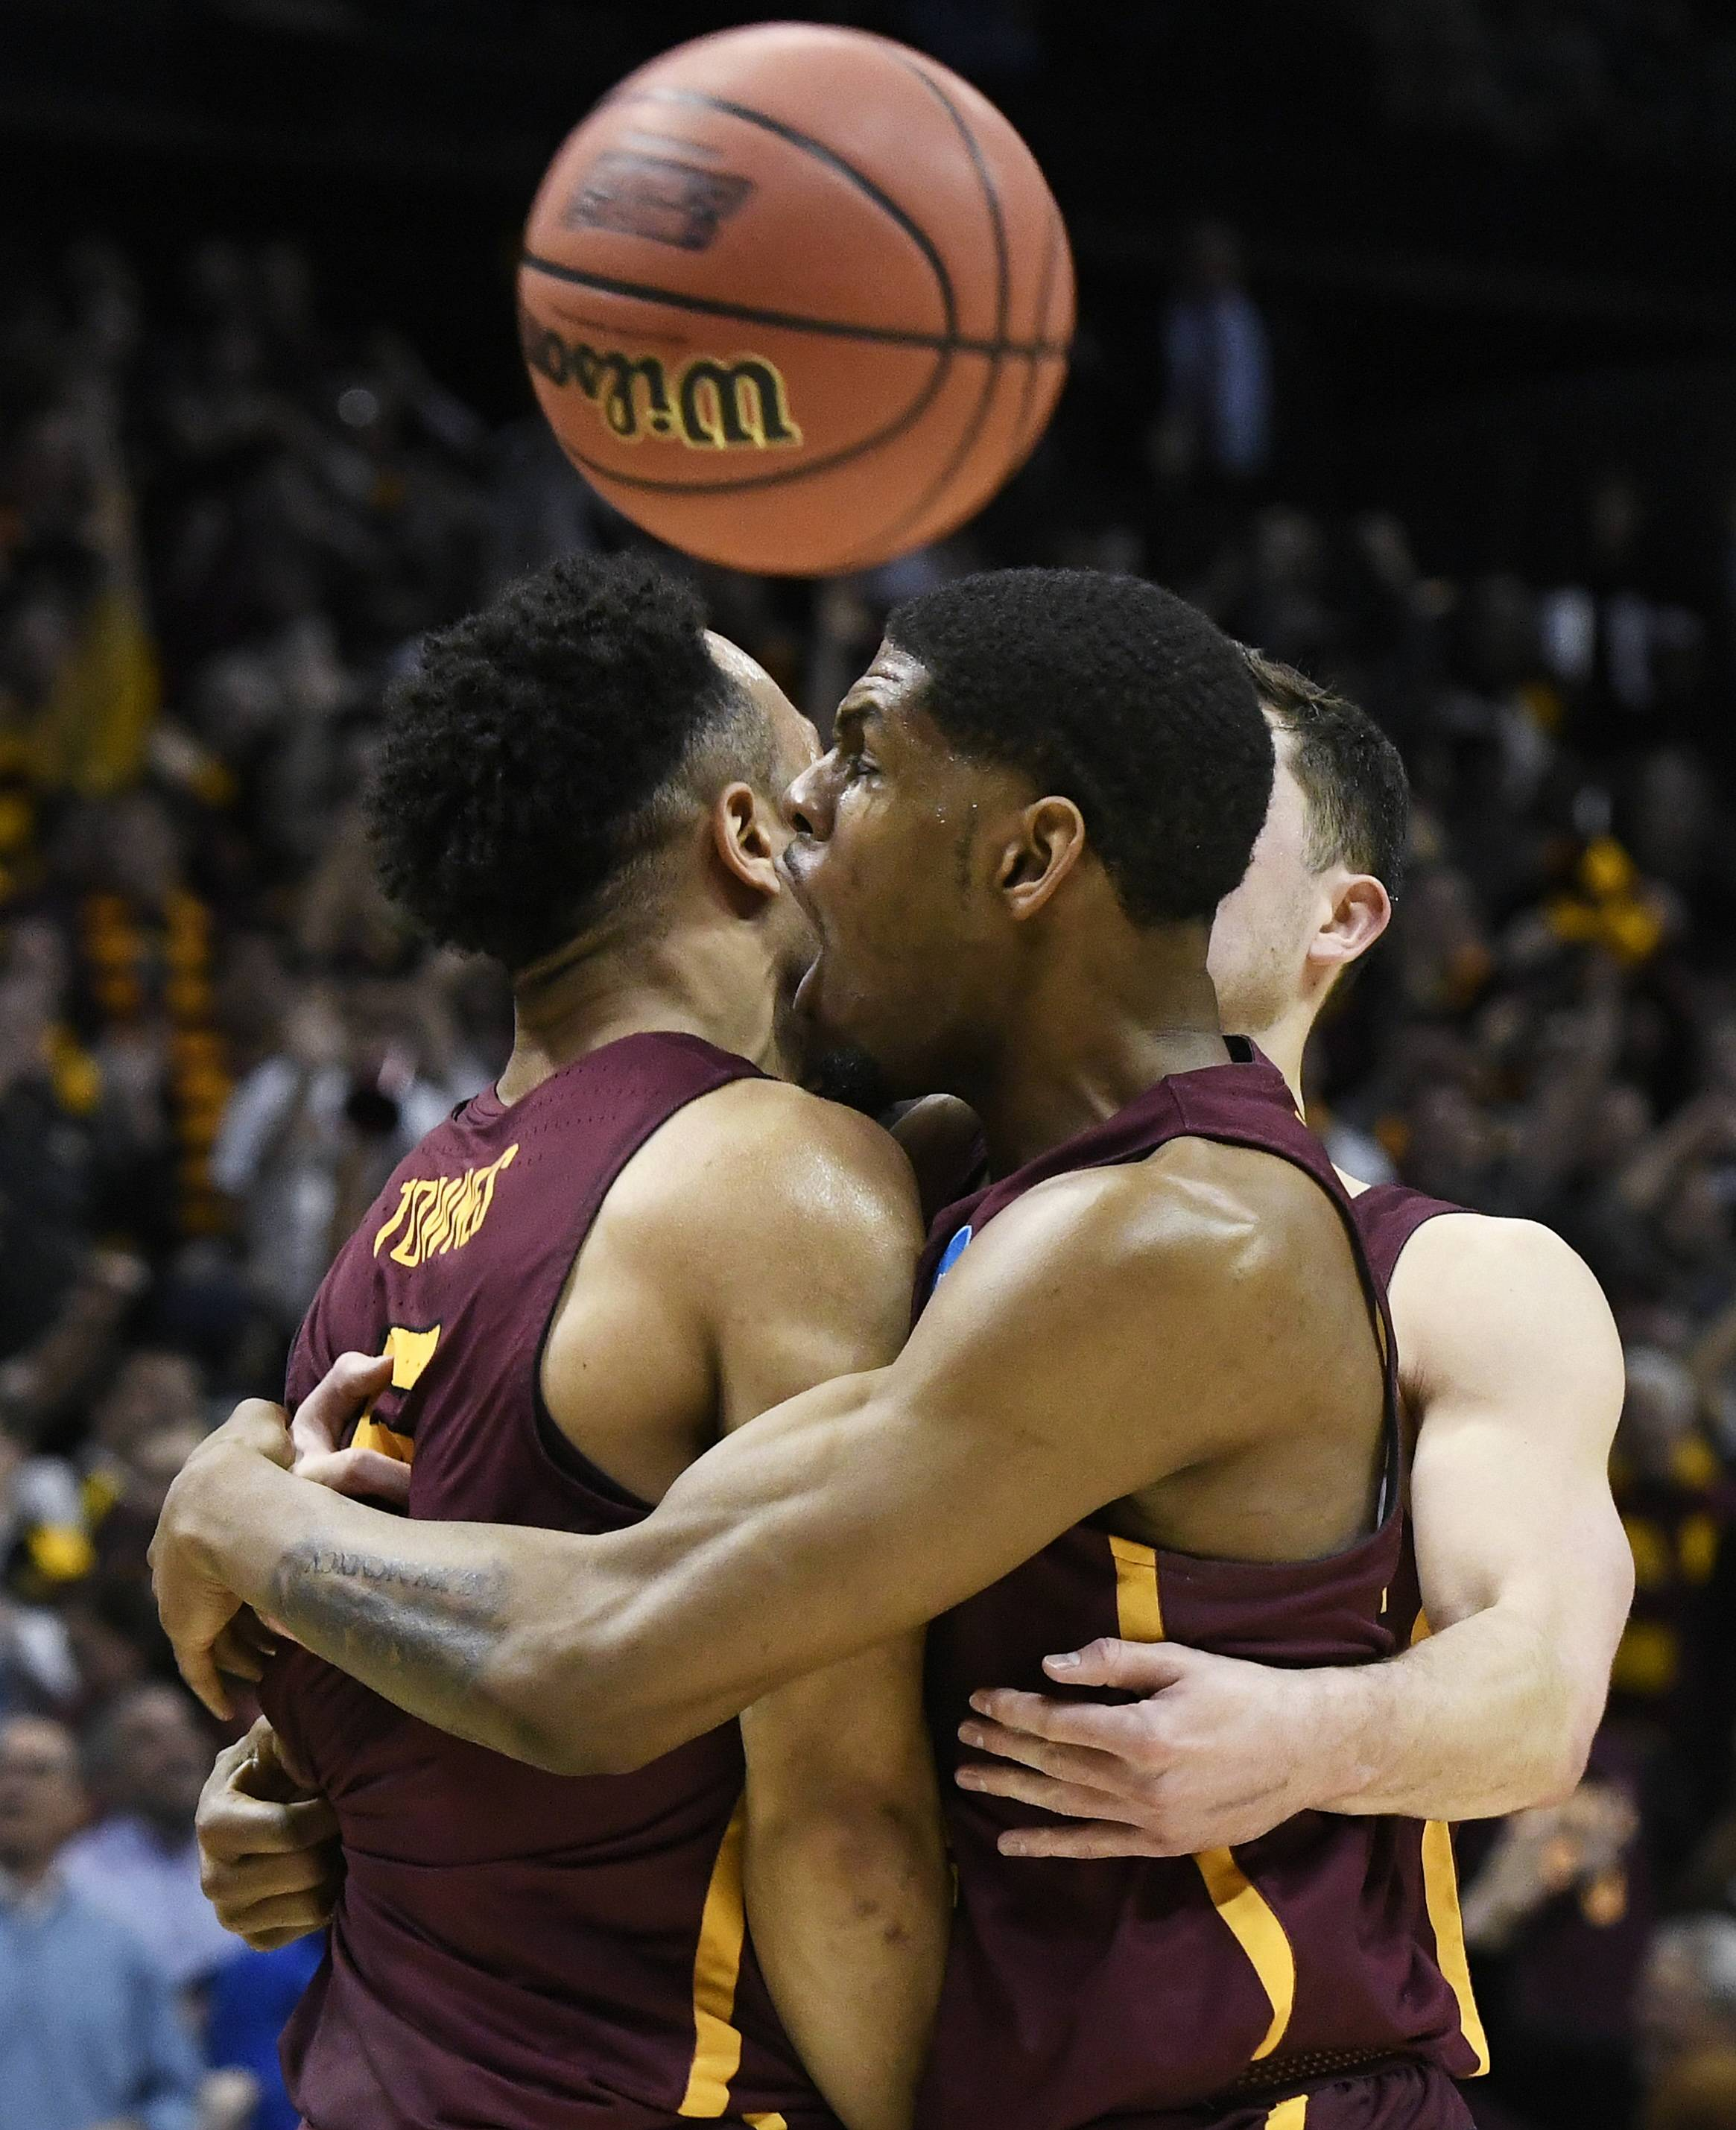 Loyola guard Marques Townes, left, his embraced my teammates after his three-point shot against Nevada during the second half of a regional semifinal NCAA college basketball game, Thursday in Atlanta. Loyola has captured the city's imagination in the past couple of weeks with its surprising run to the Elite Eight. Before the Ramblers face Kansas State in the regional final on Saturday, get caught up on what makes this team so great.